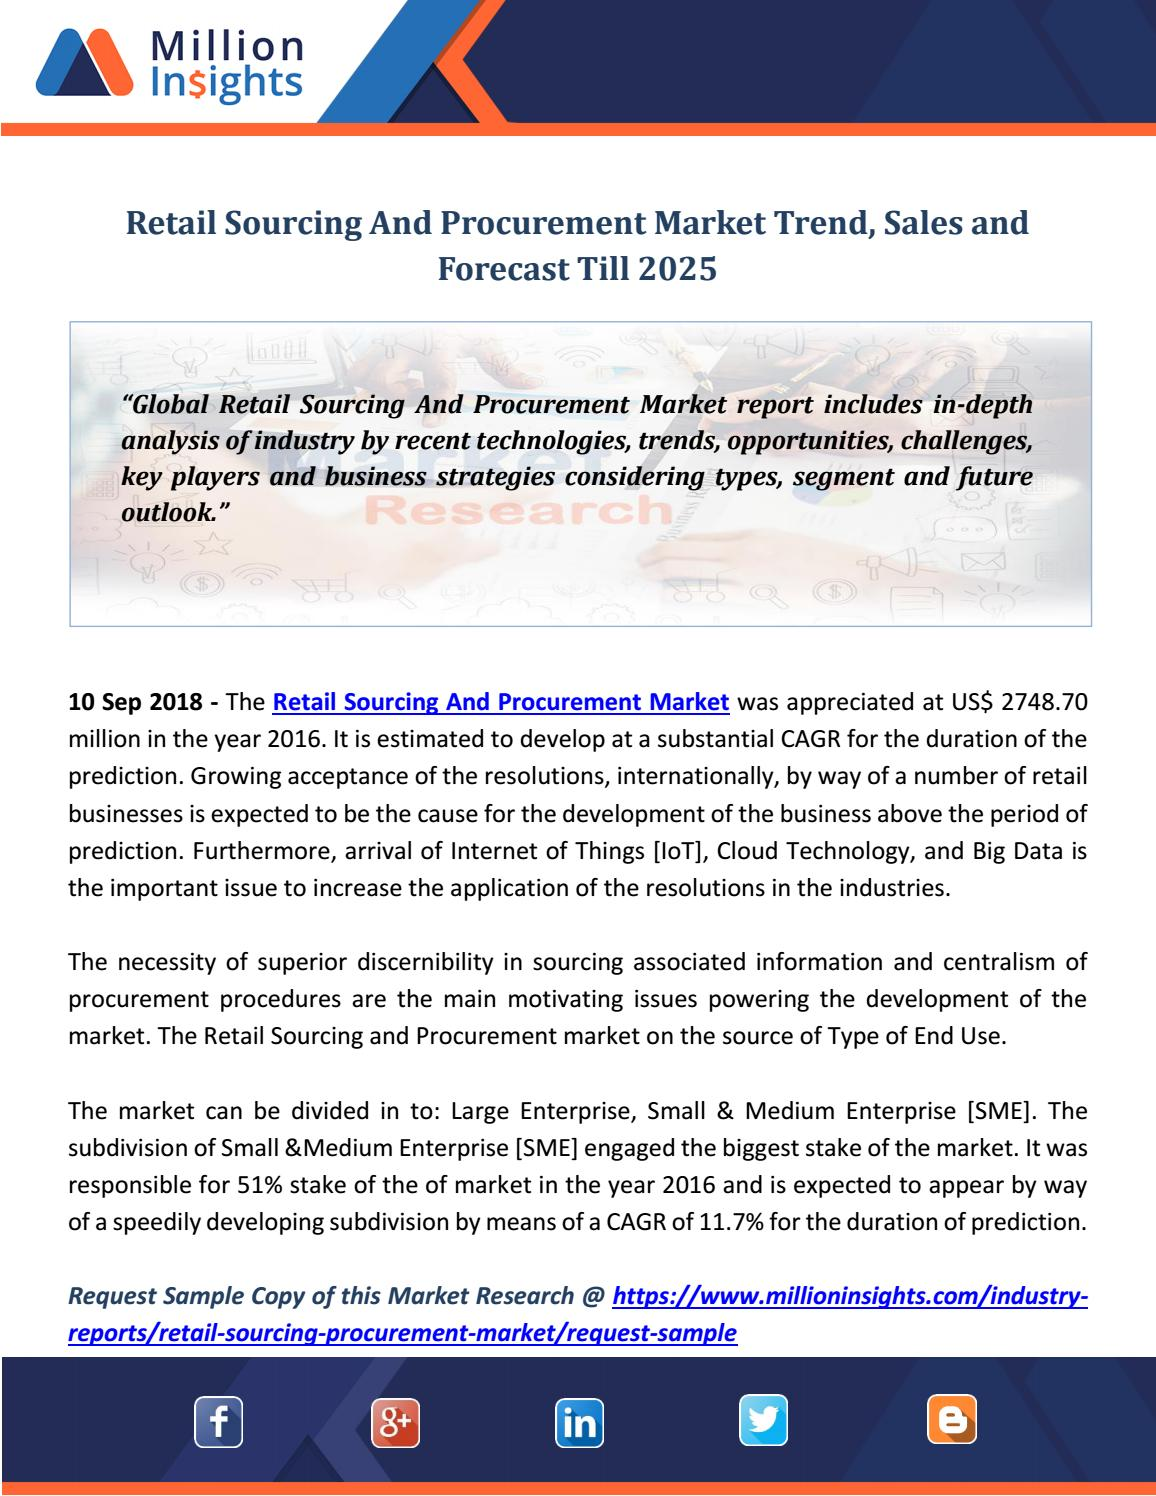 Retail Sourcing And Procurement Market Trend, Sales and